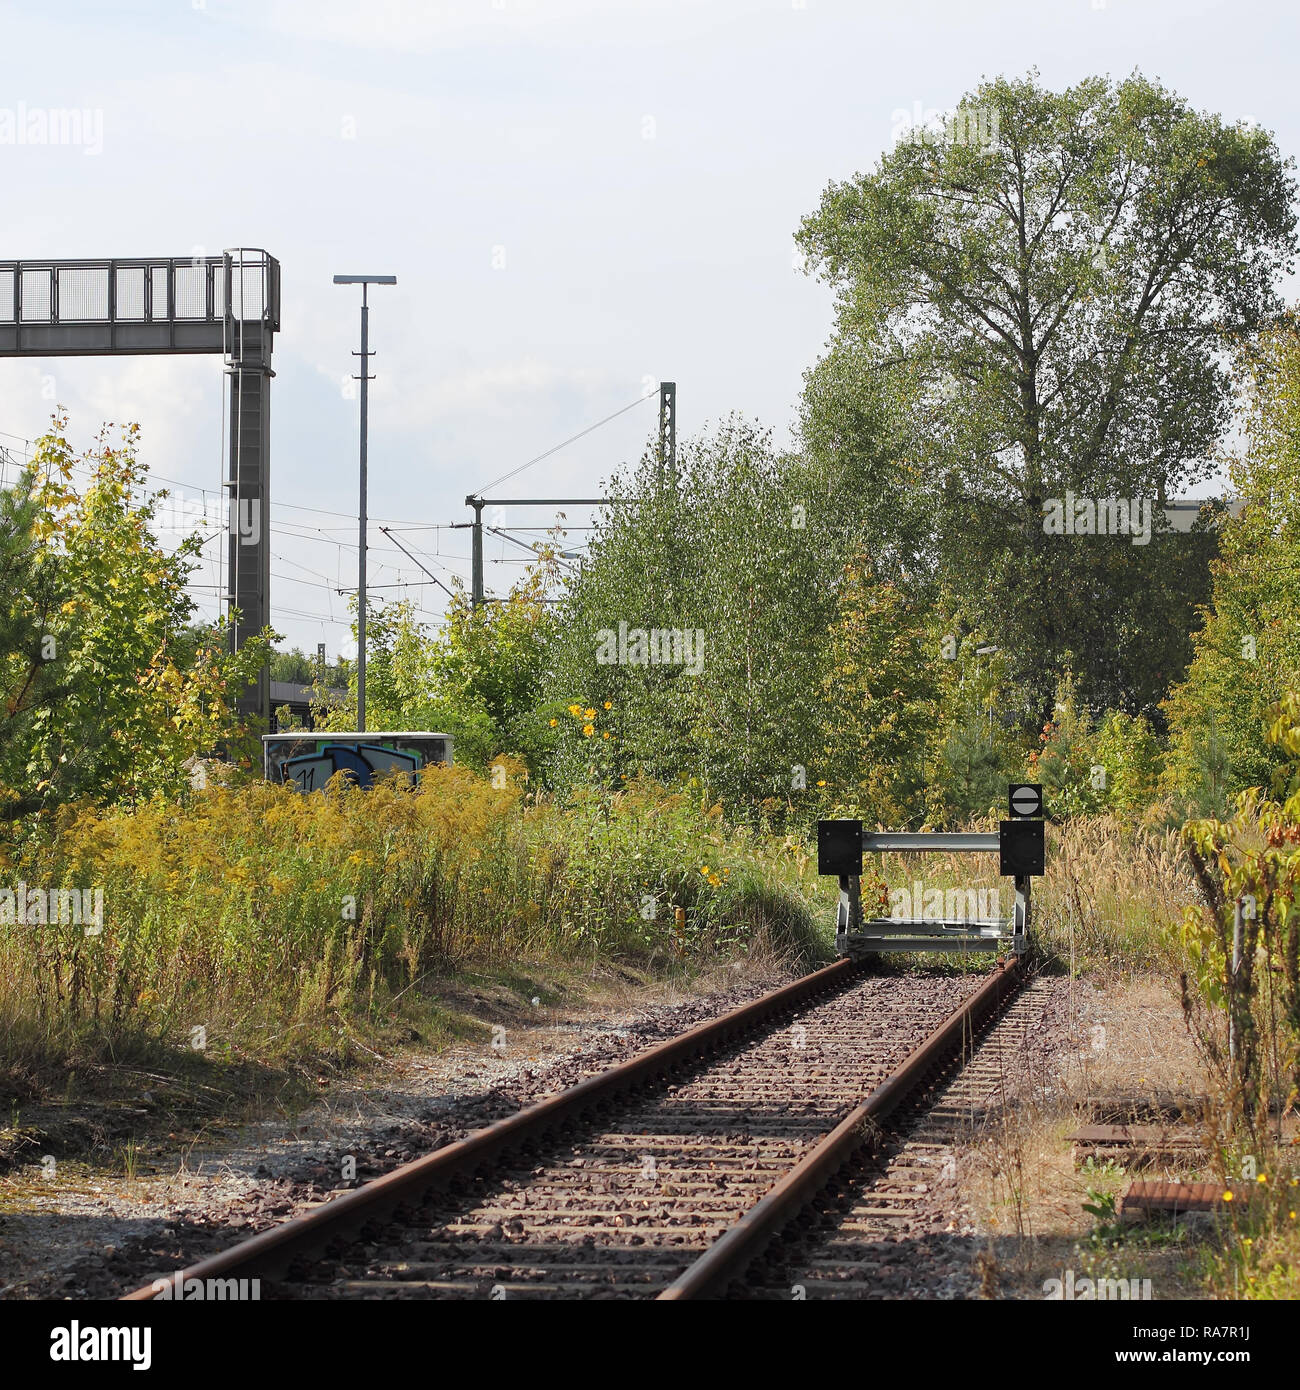 Decommissioned Dead-end tracks - Stock Image